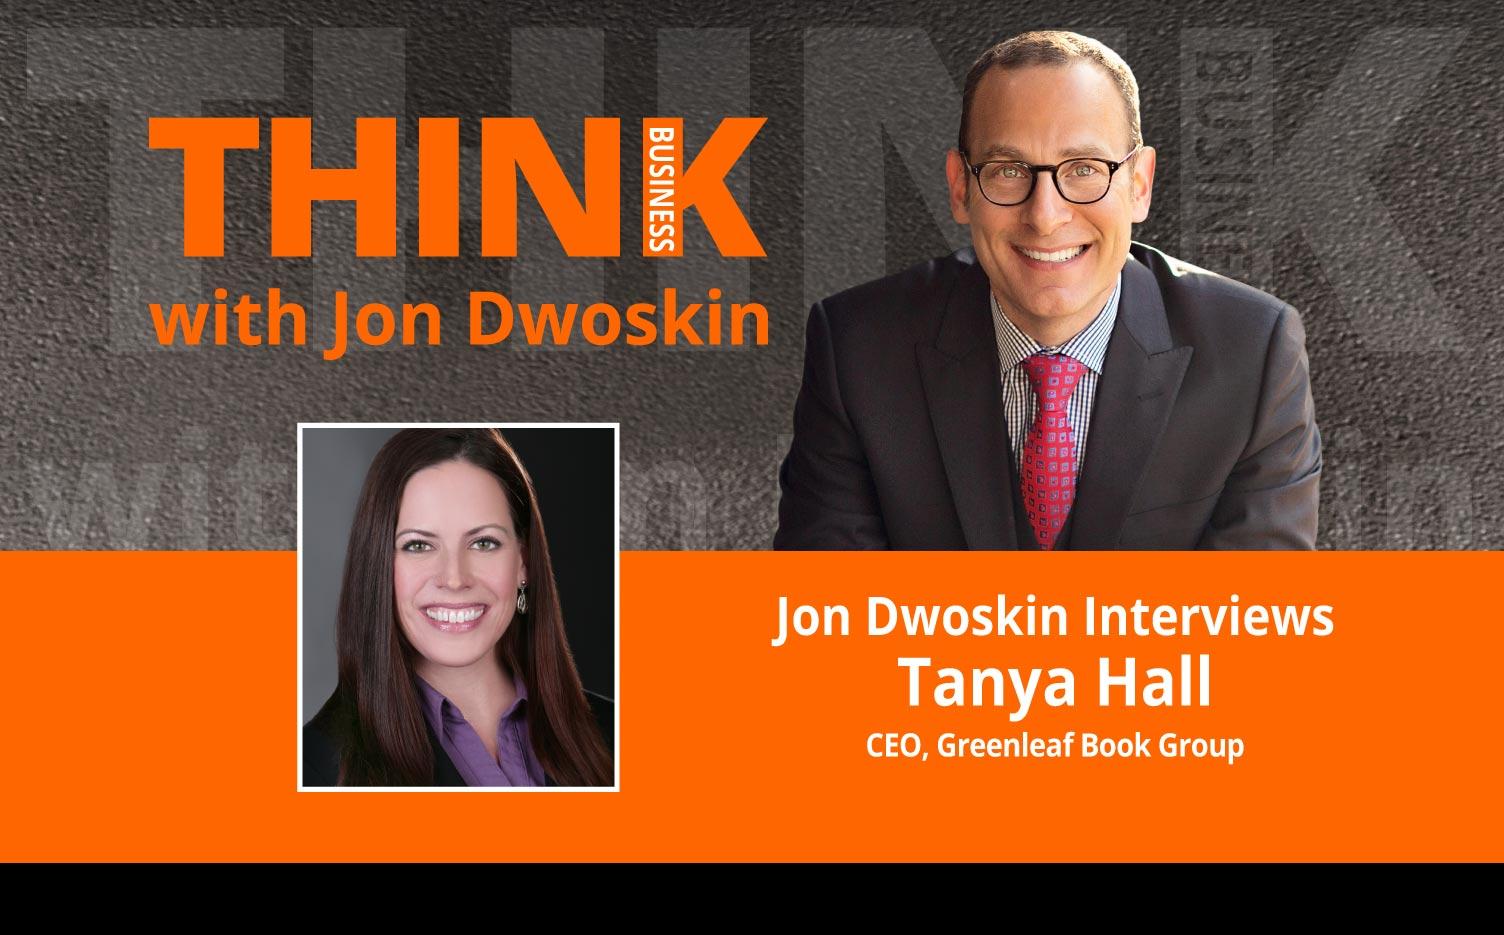 THINK Business Podcast: Jon Dwoskin Interviews Tanya Hall